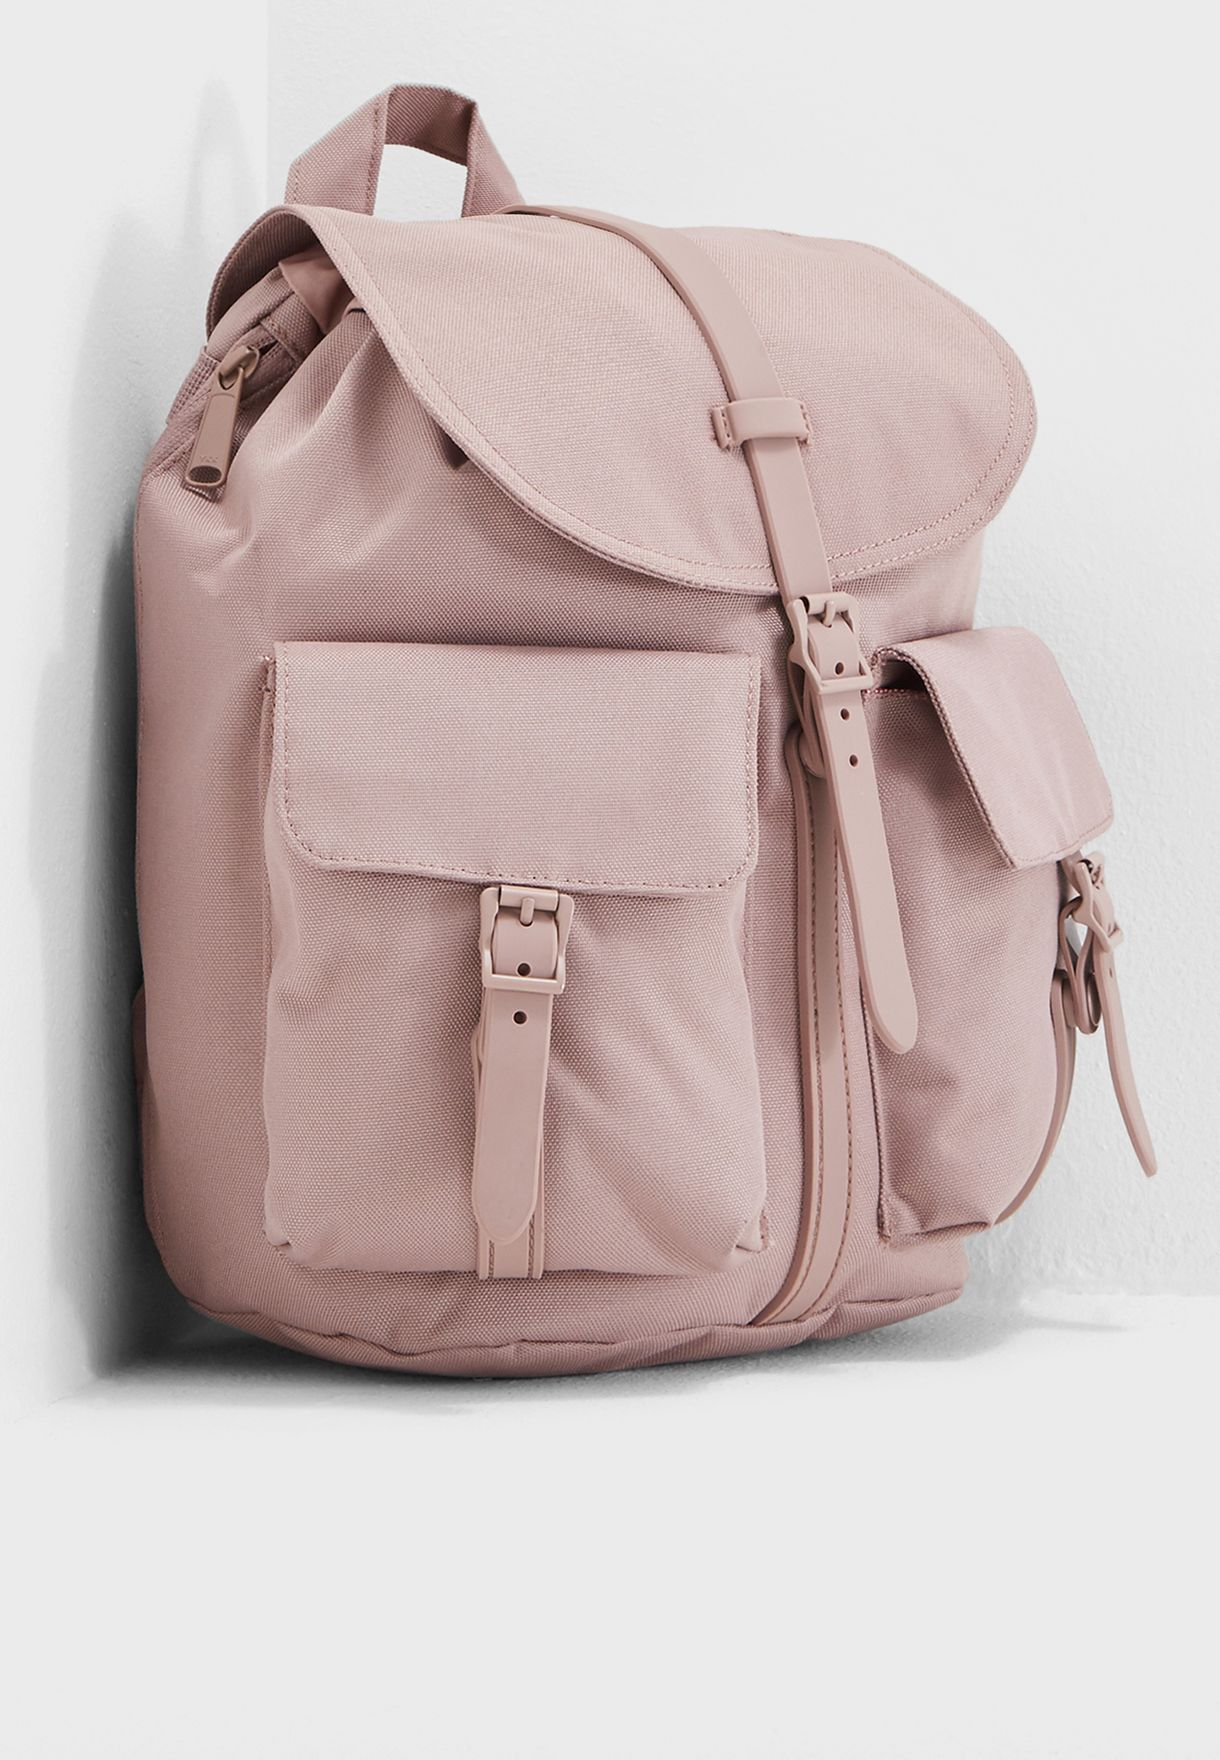 4e4205c8c1f4 Shop Herschel pink Extra Small Dawson Backpack 10301-02077-OS for ...